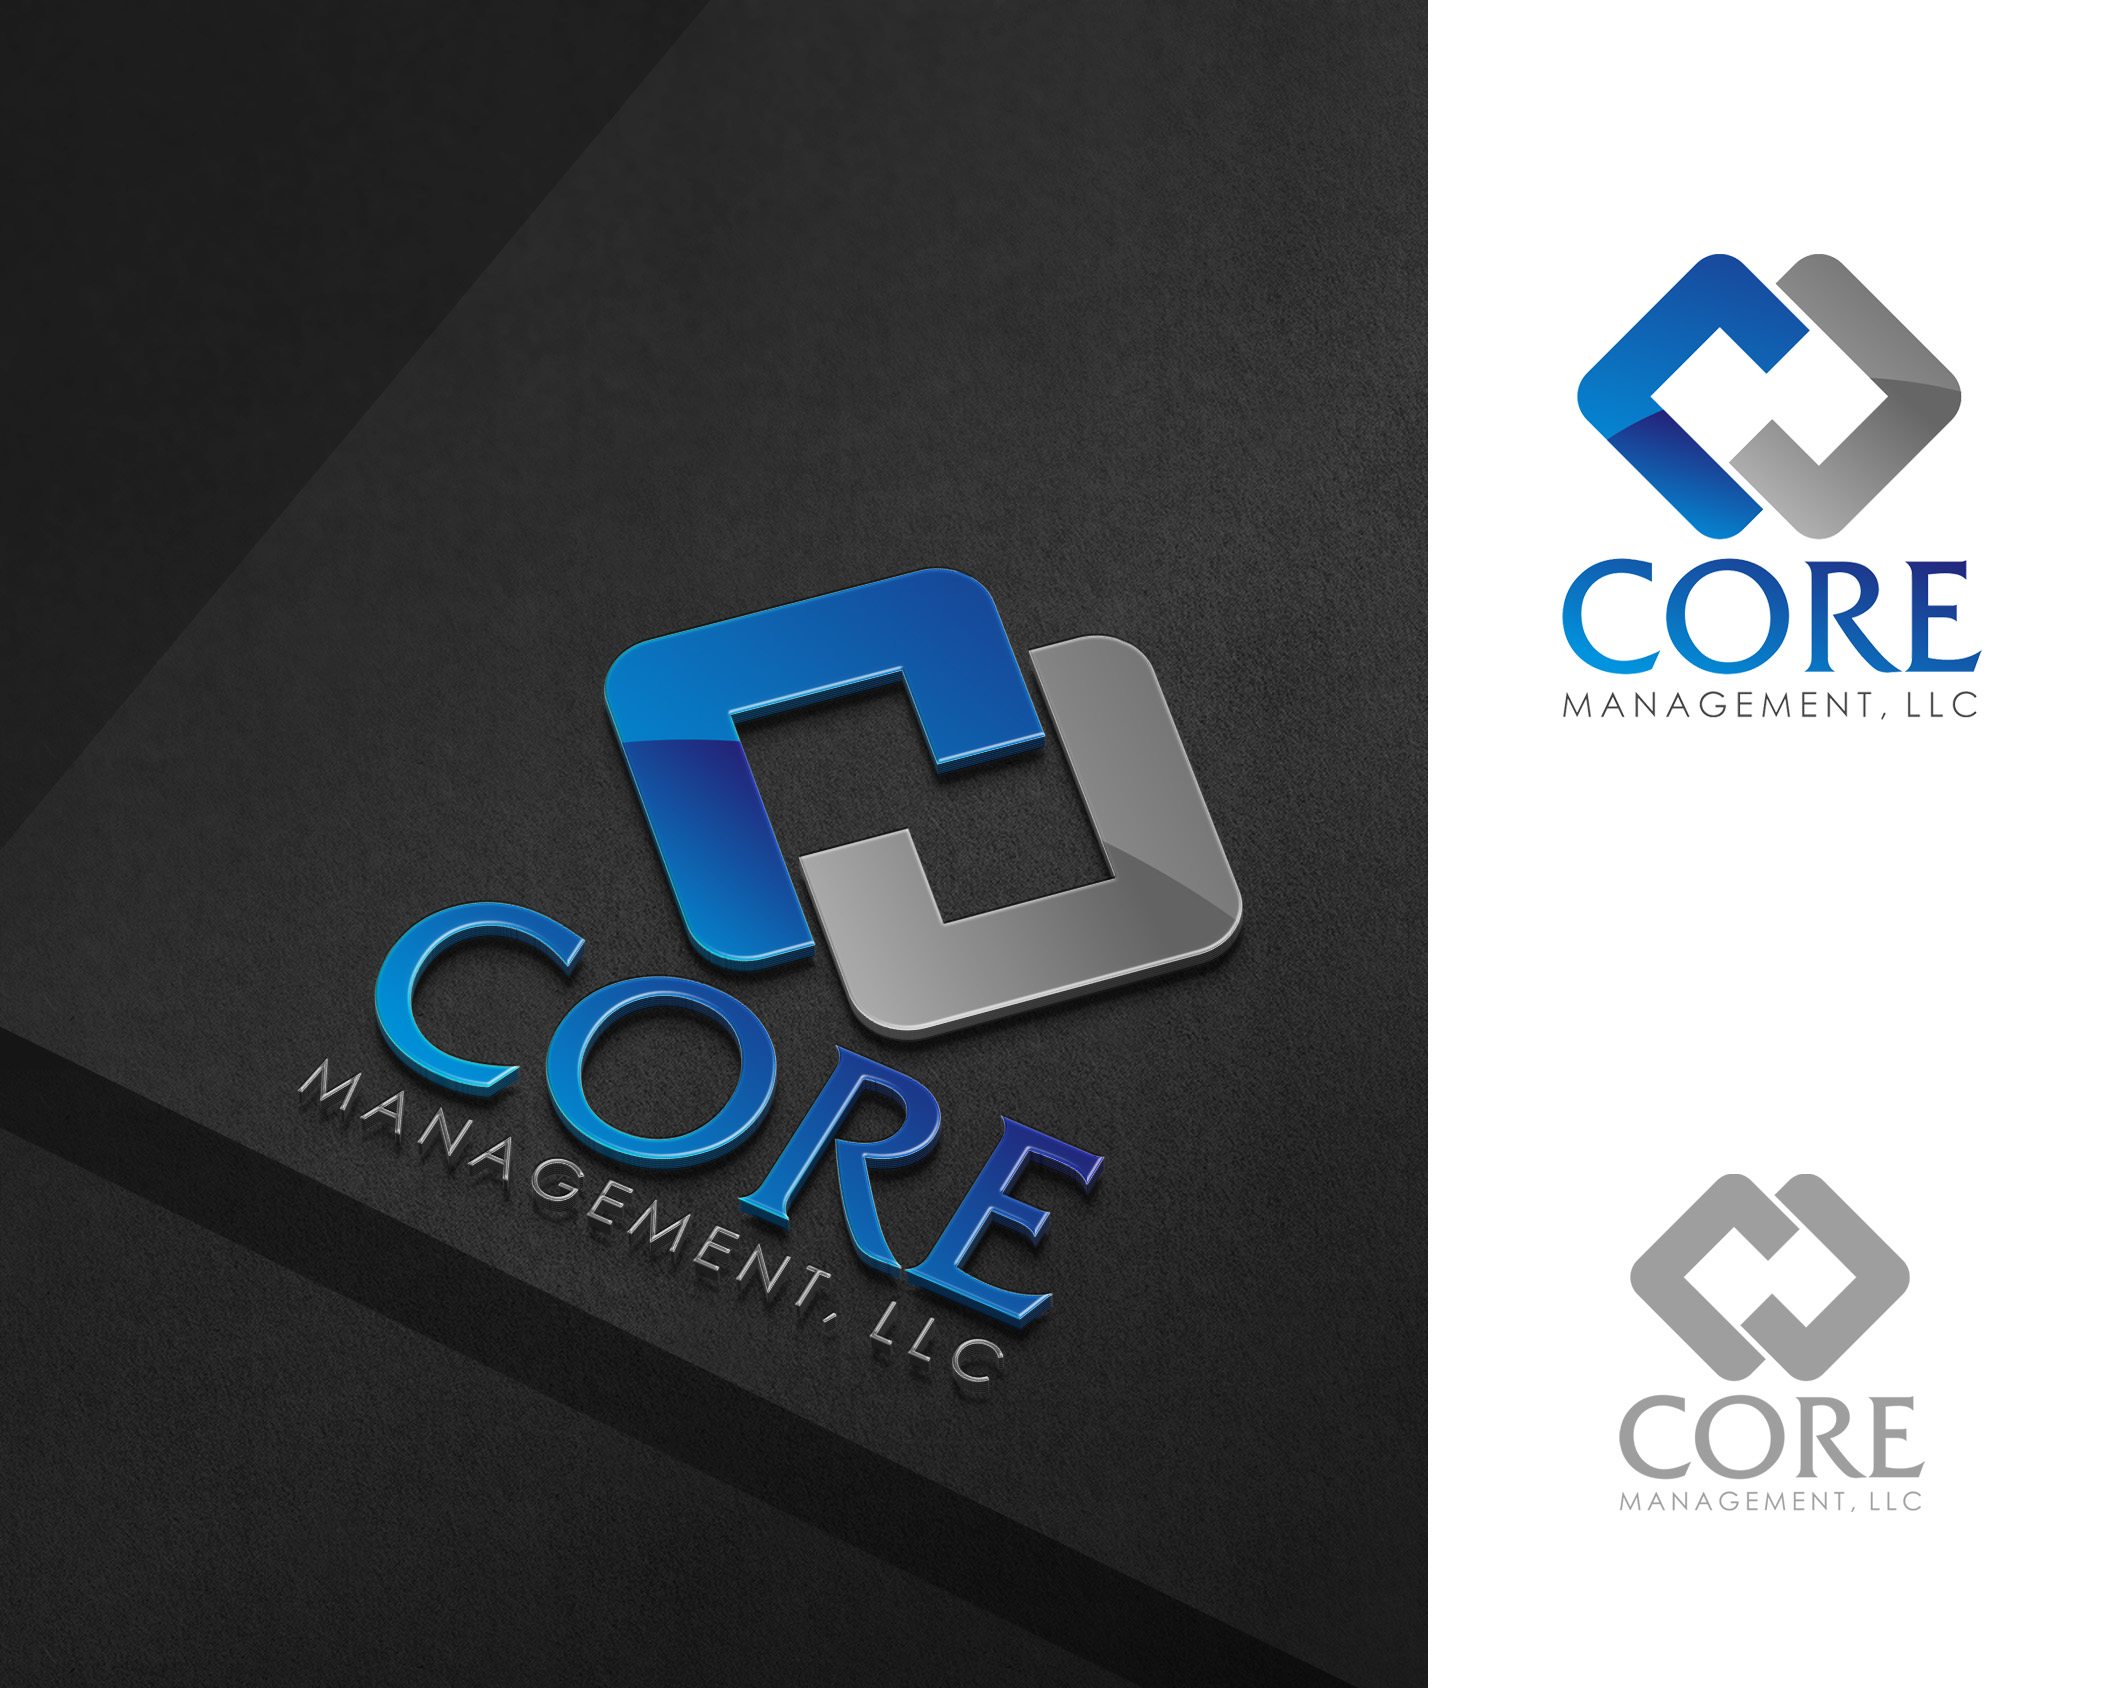 Logo Design by Yudi Aswanto - Entry No. 218 in the Logo Design Contest Creative Logo Design for CORE Management, LLC.